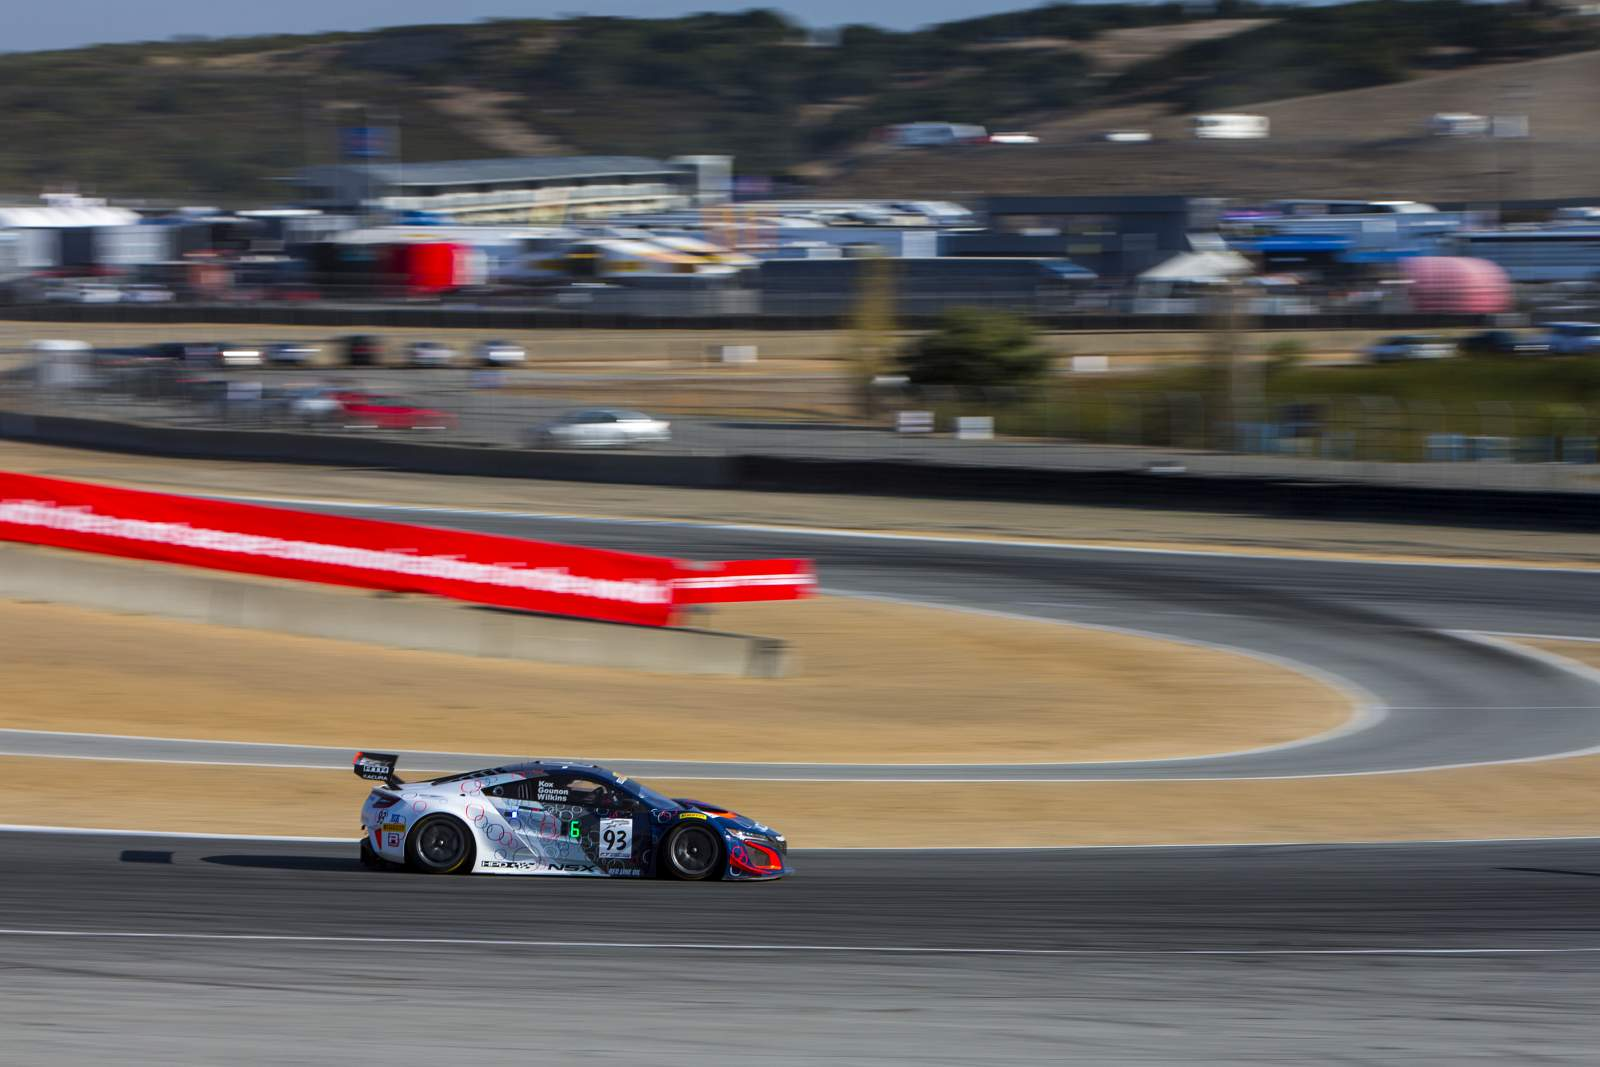 peter-kox-realtime-racing-pirelli-world-challenge-california-040